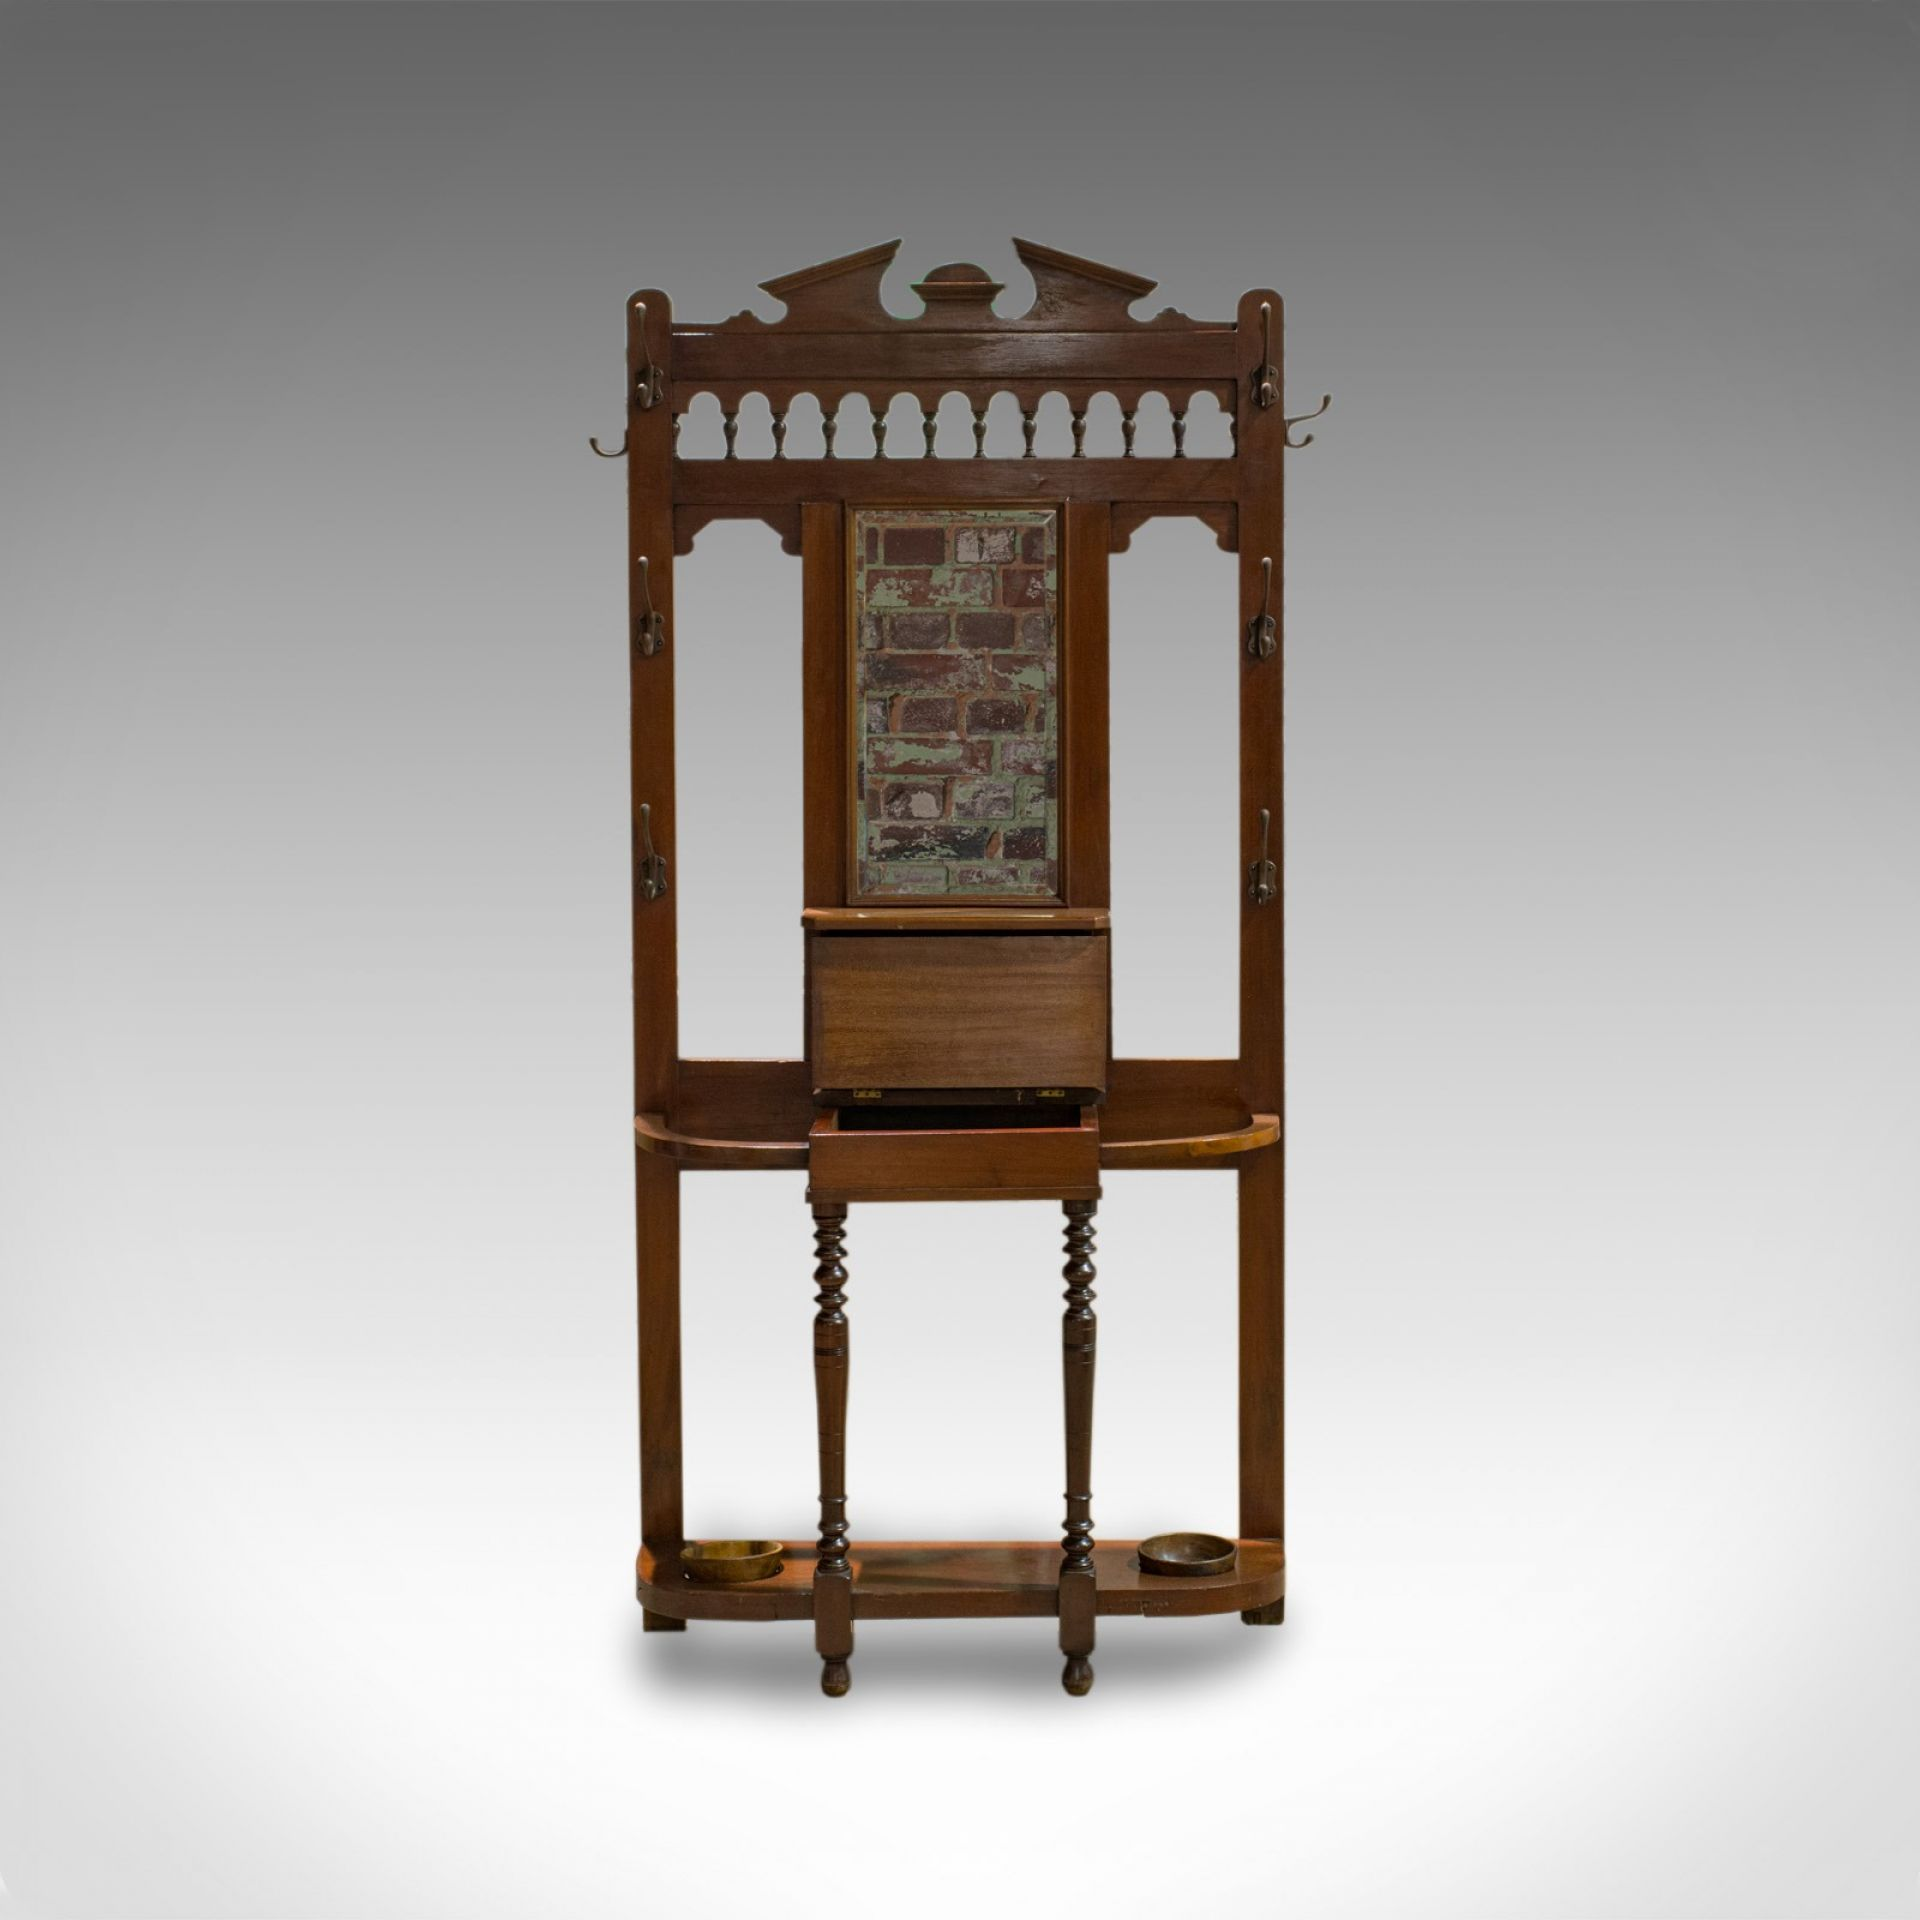 Antique Hall Stand, English, Walnut, Stick, Coat, Hat Stand, Edwardian, C.1910